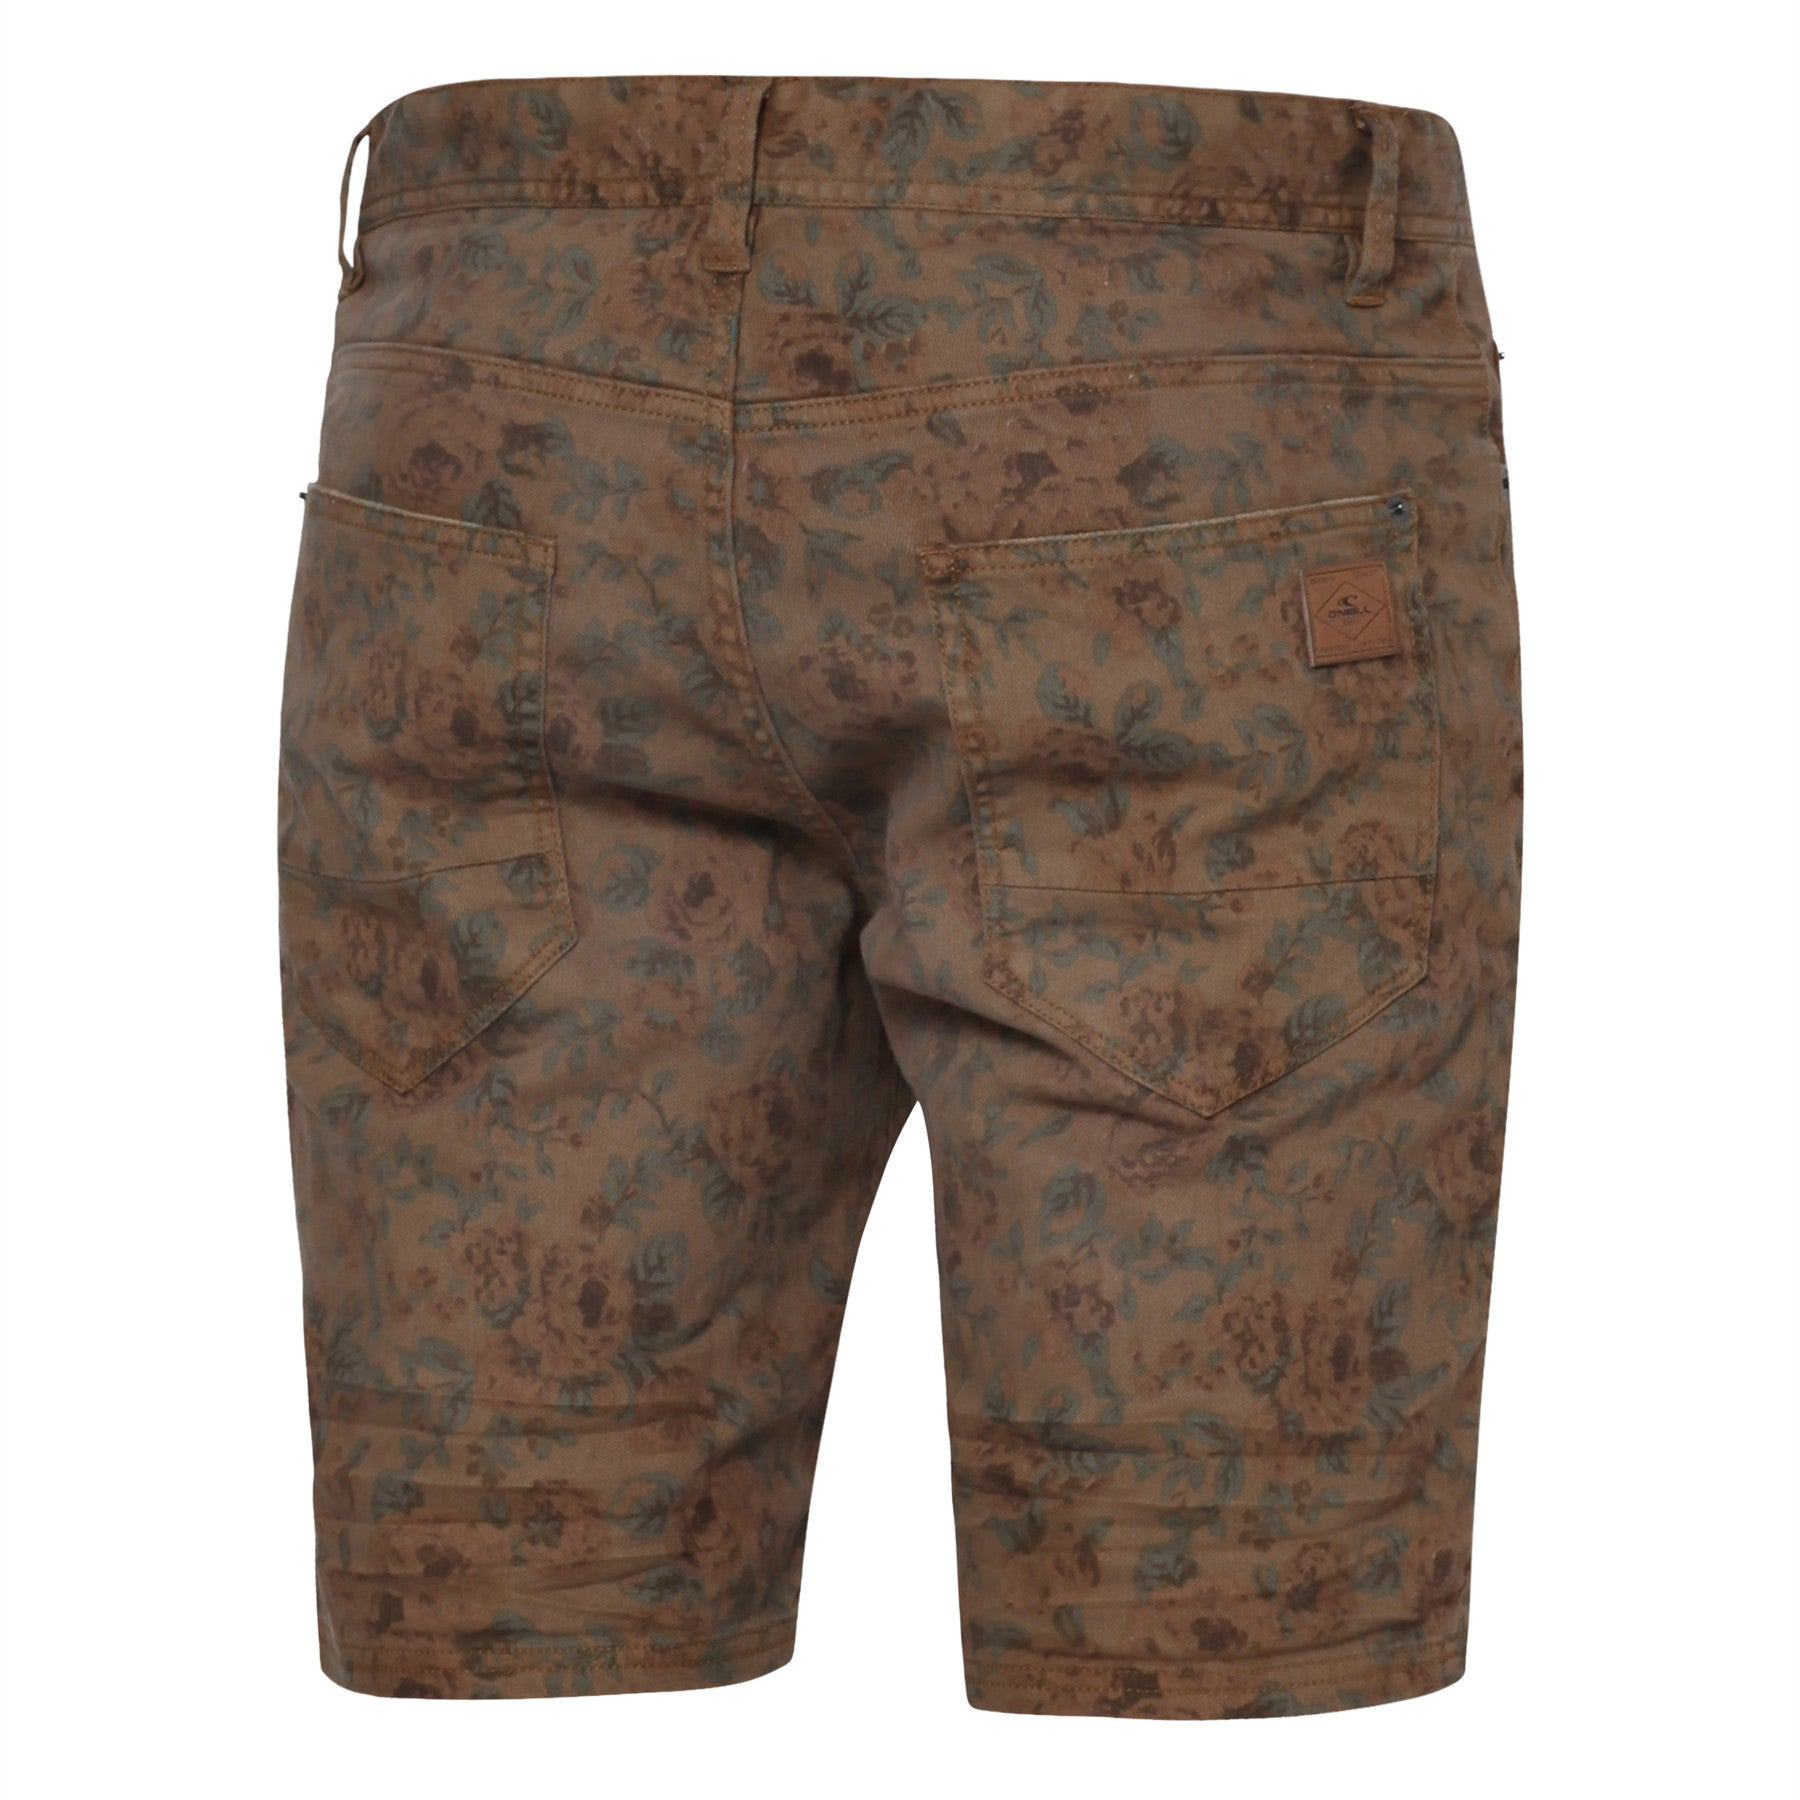 Stringer Pattern Walkshorts Brown AOP - Stoked Boardshop  - 2